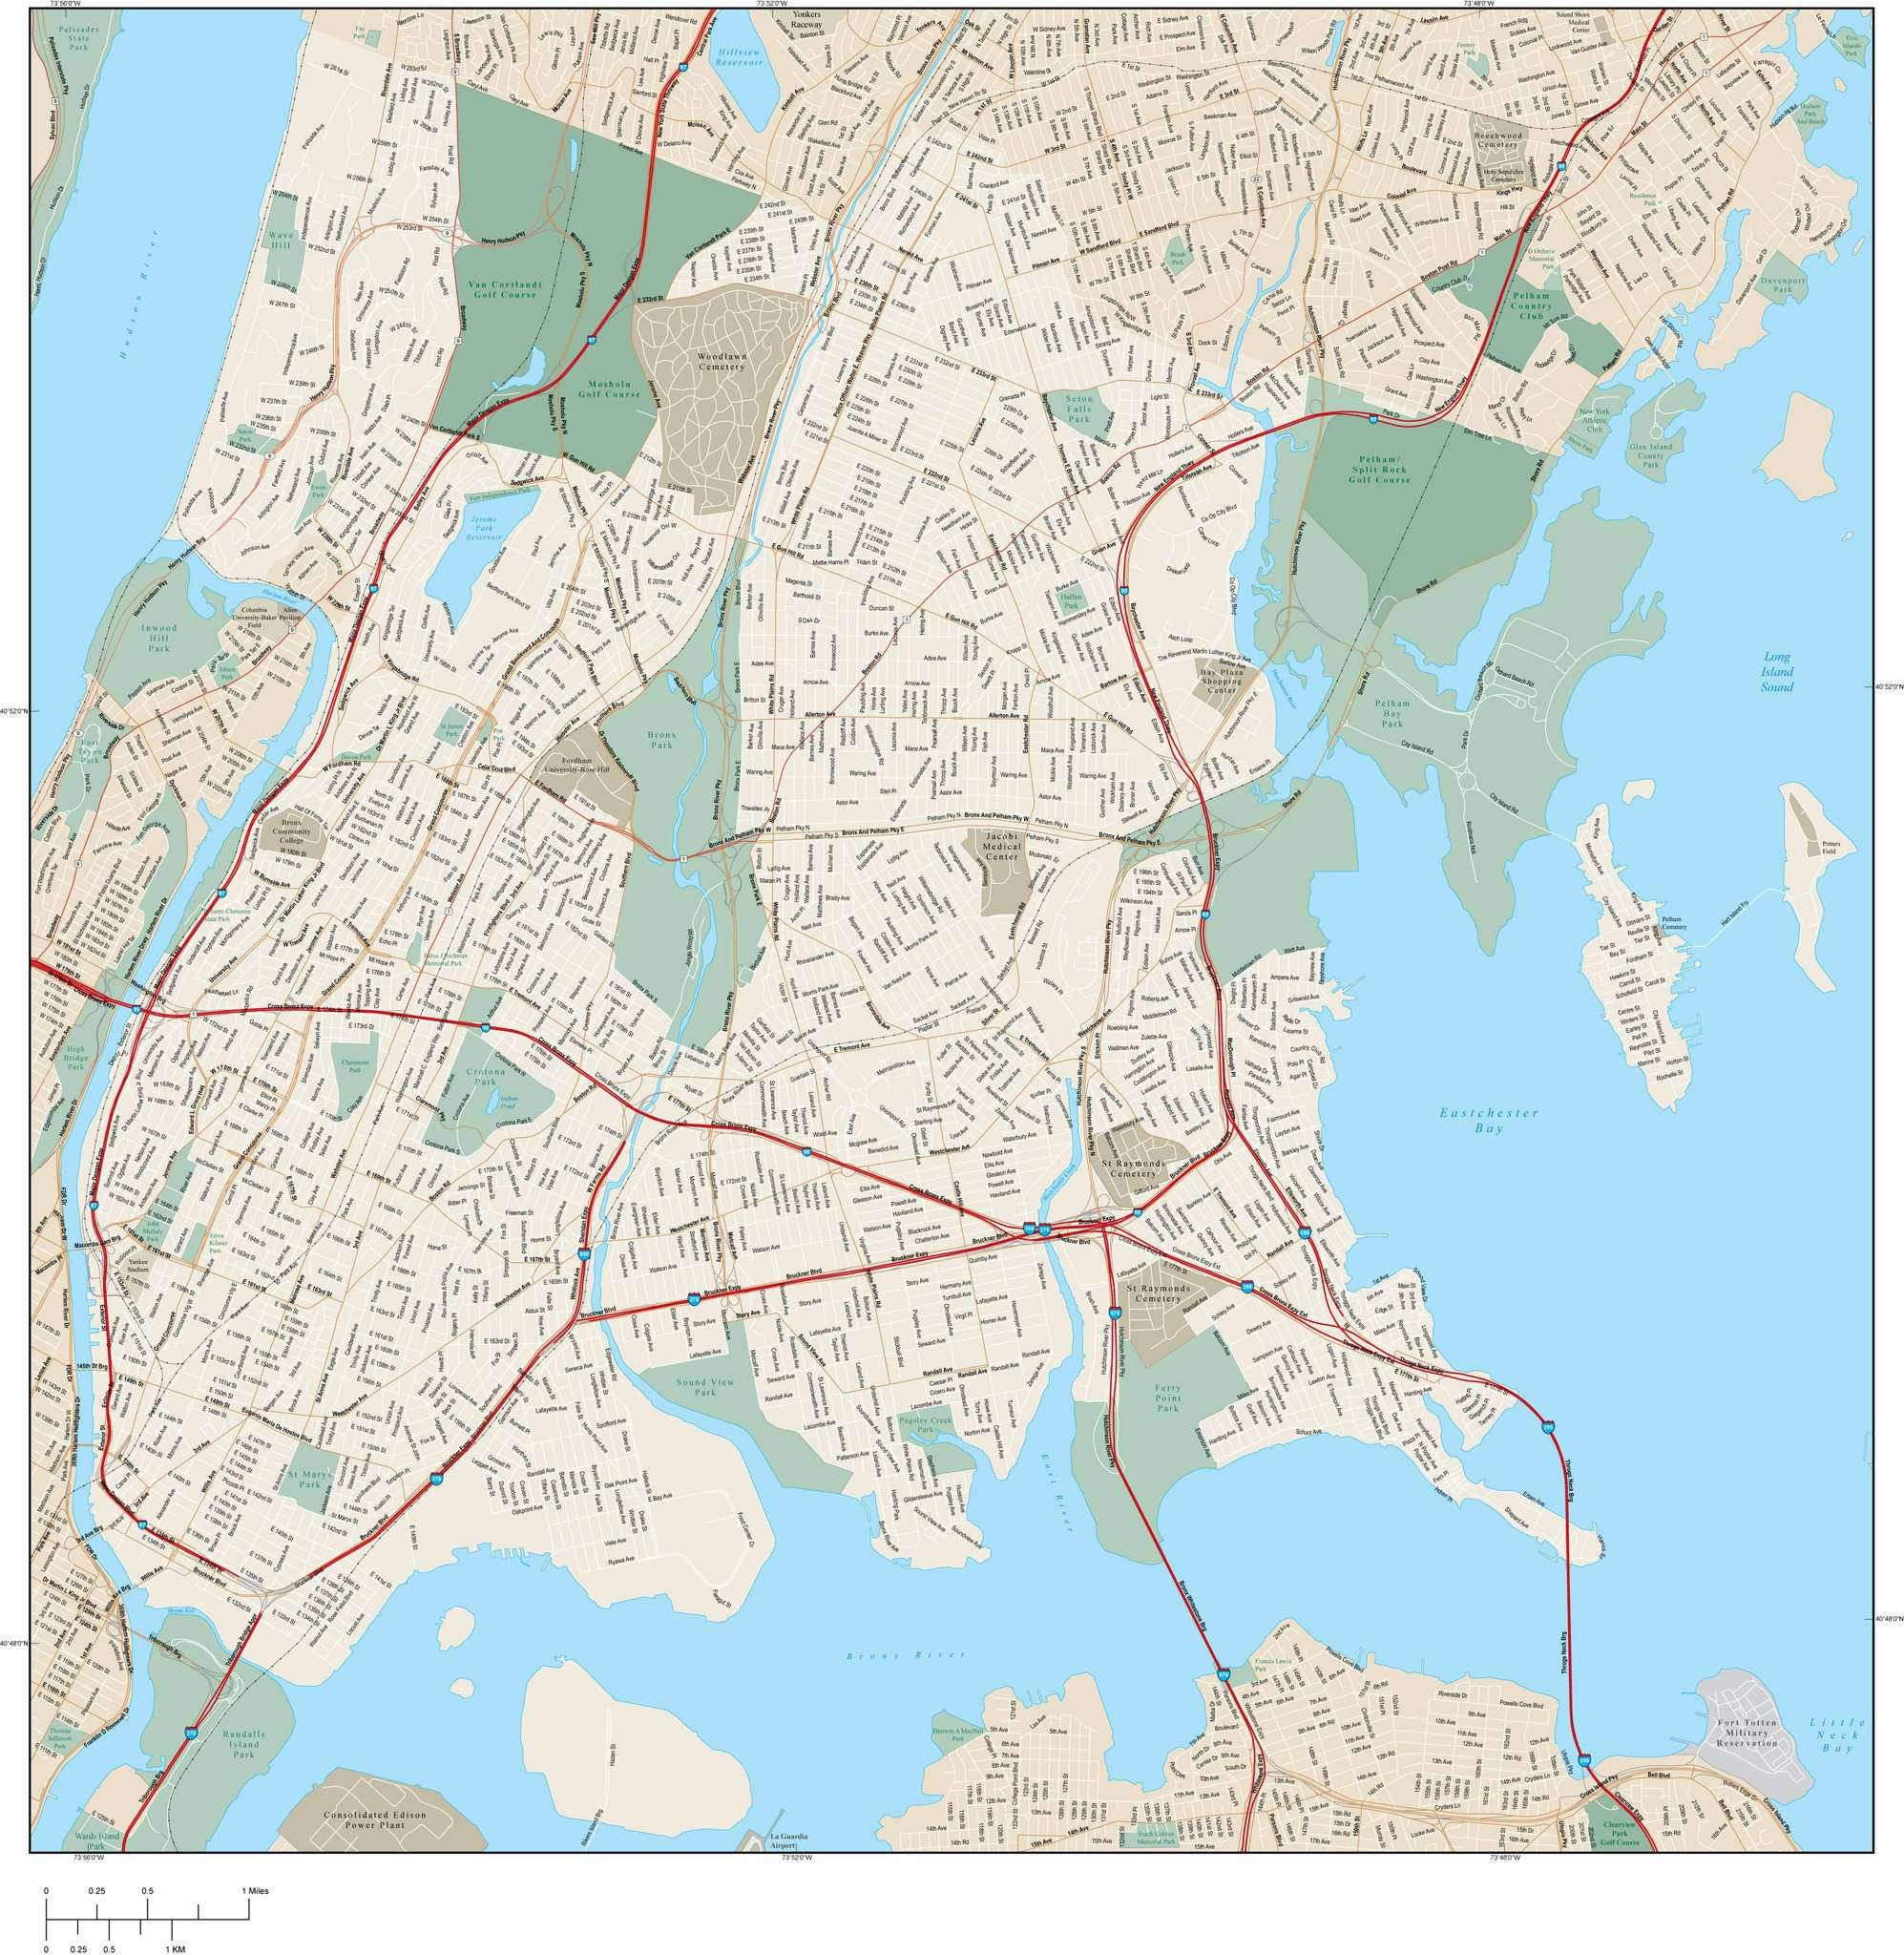 Bronx Vector Map With Local Streets In Adobe Illustrator Vector Format